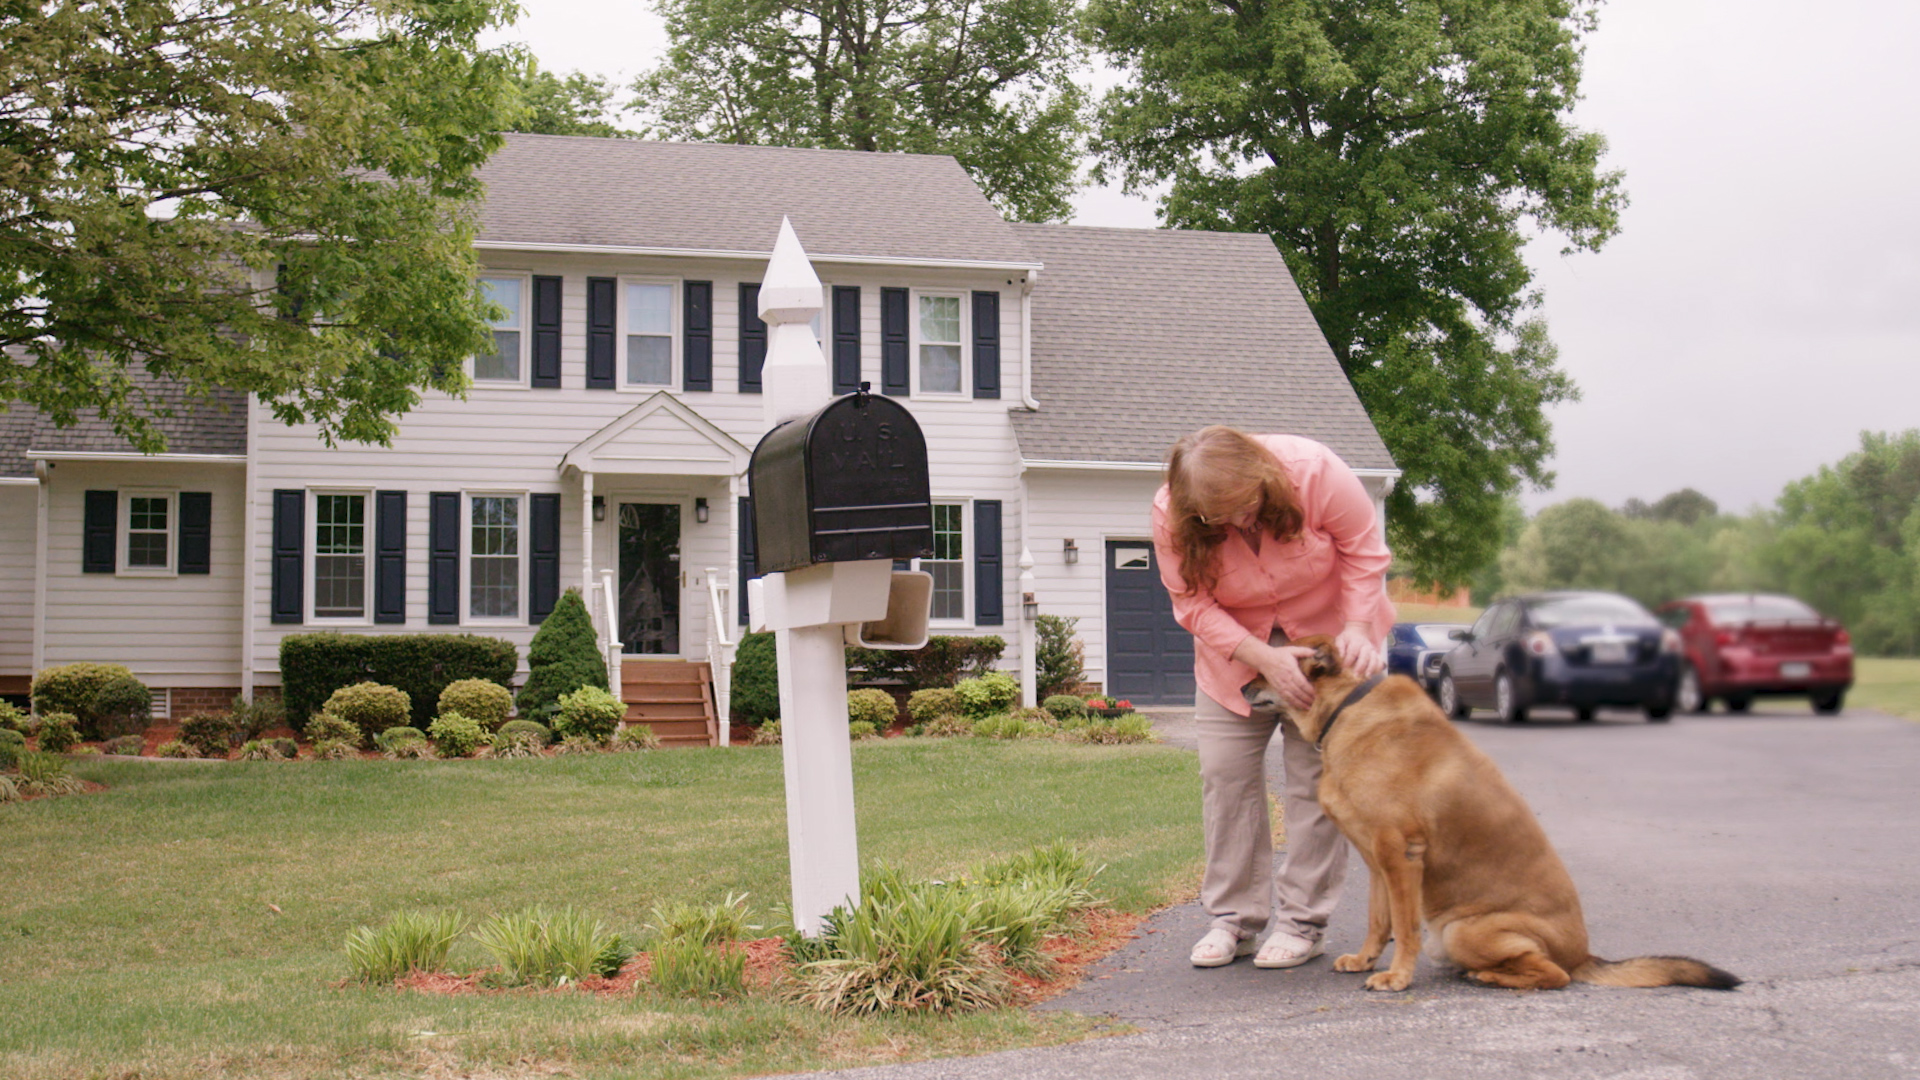 Donna pets her dog outside her new home